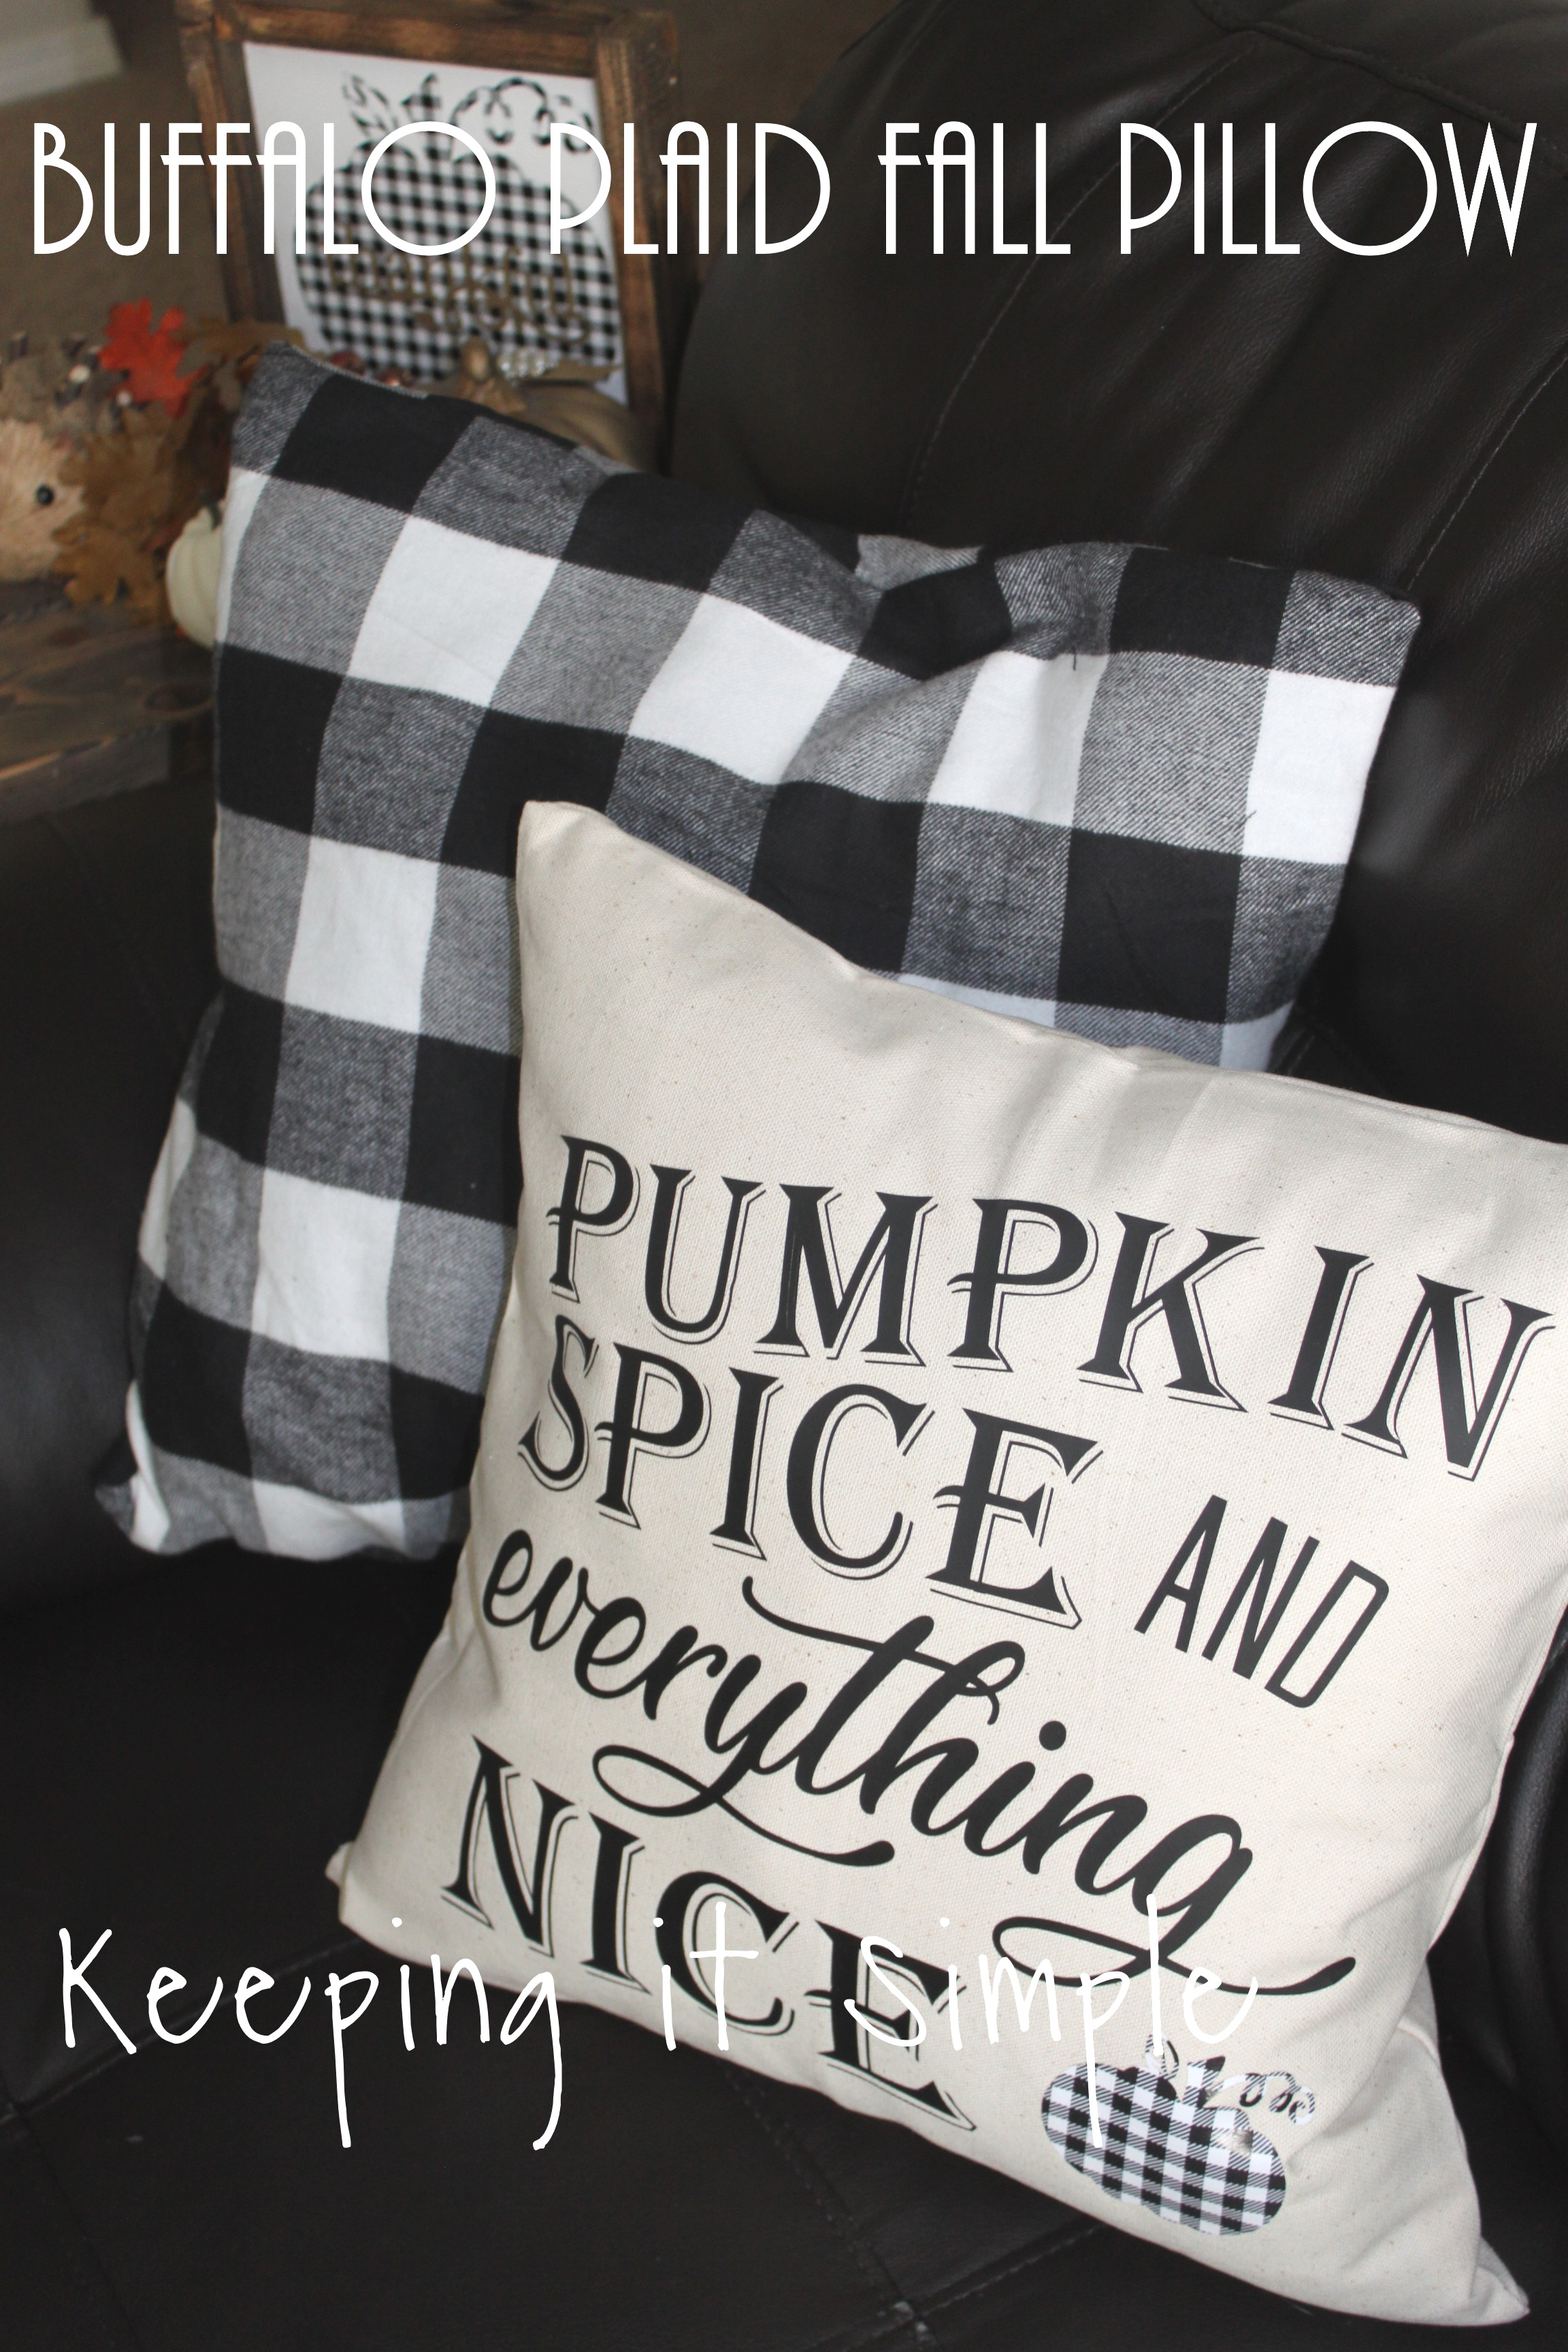 Buffalo Plaid Fall Pillow Pumpkin Spice And Everything